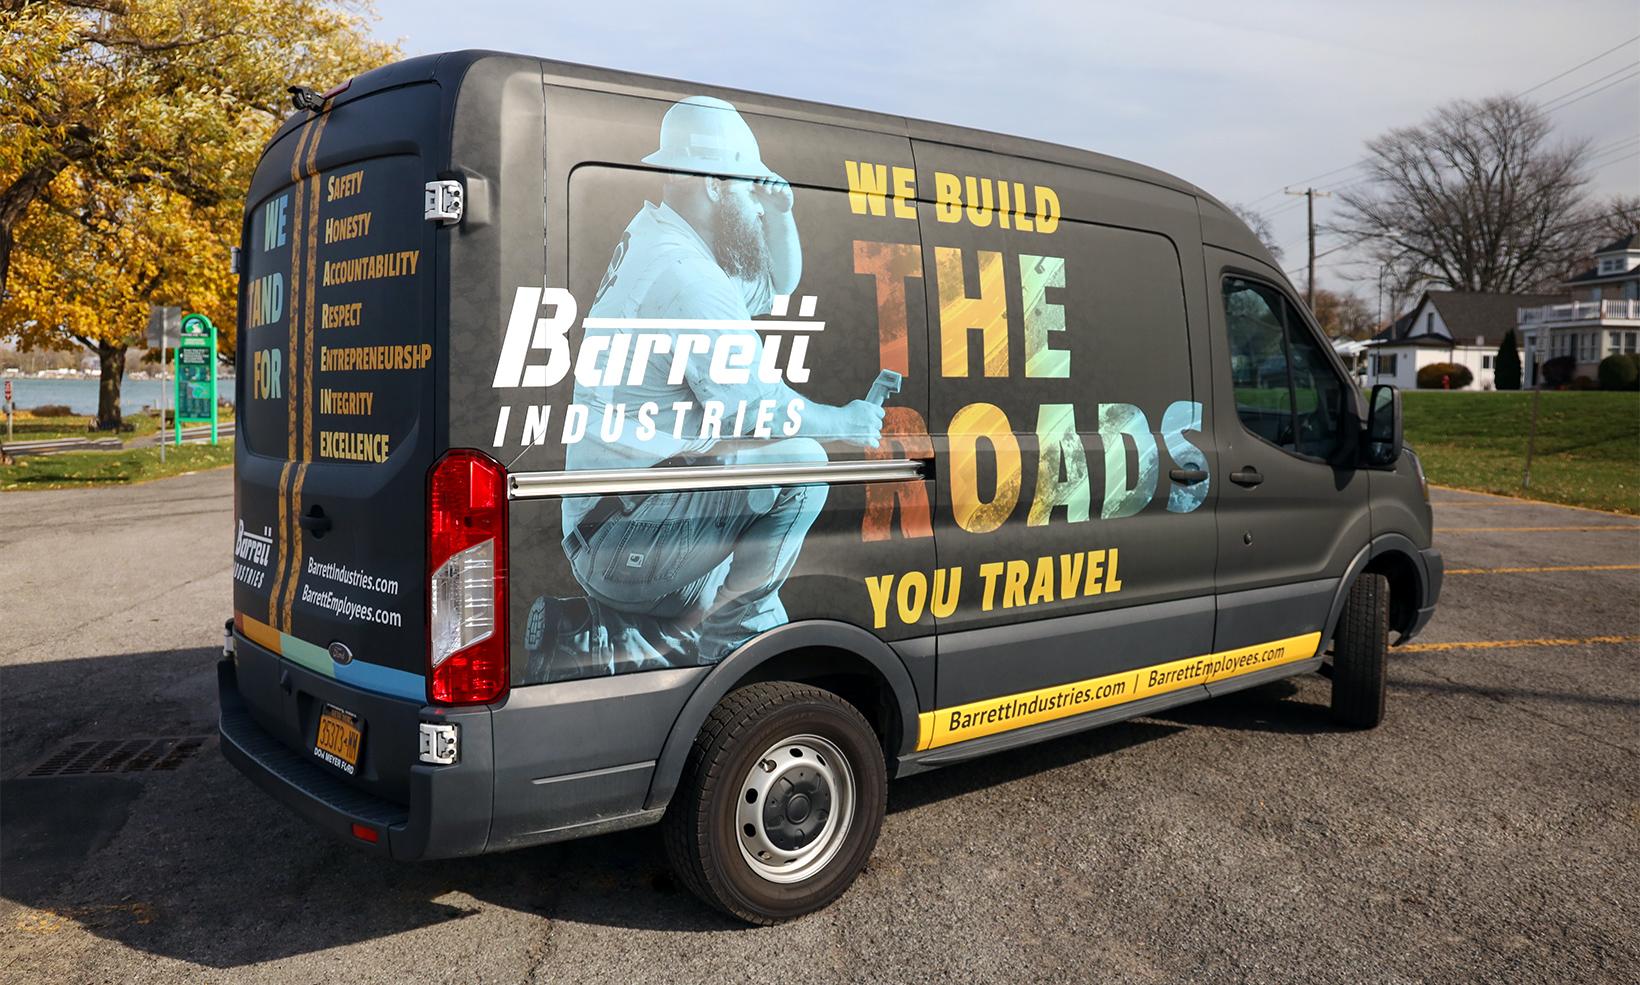 OW|EN designed a custom vehicle wrap for Barrett Industries that takes their brand on the road